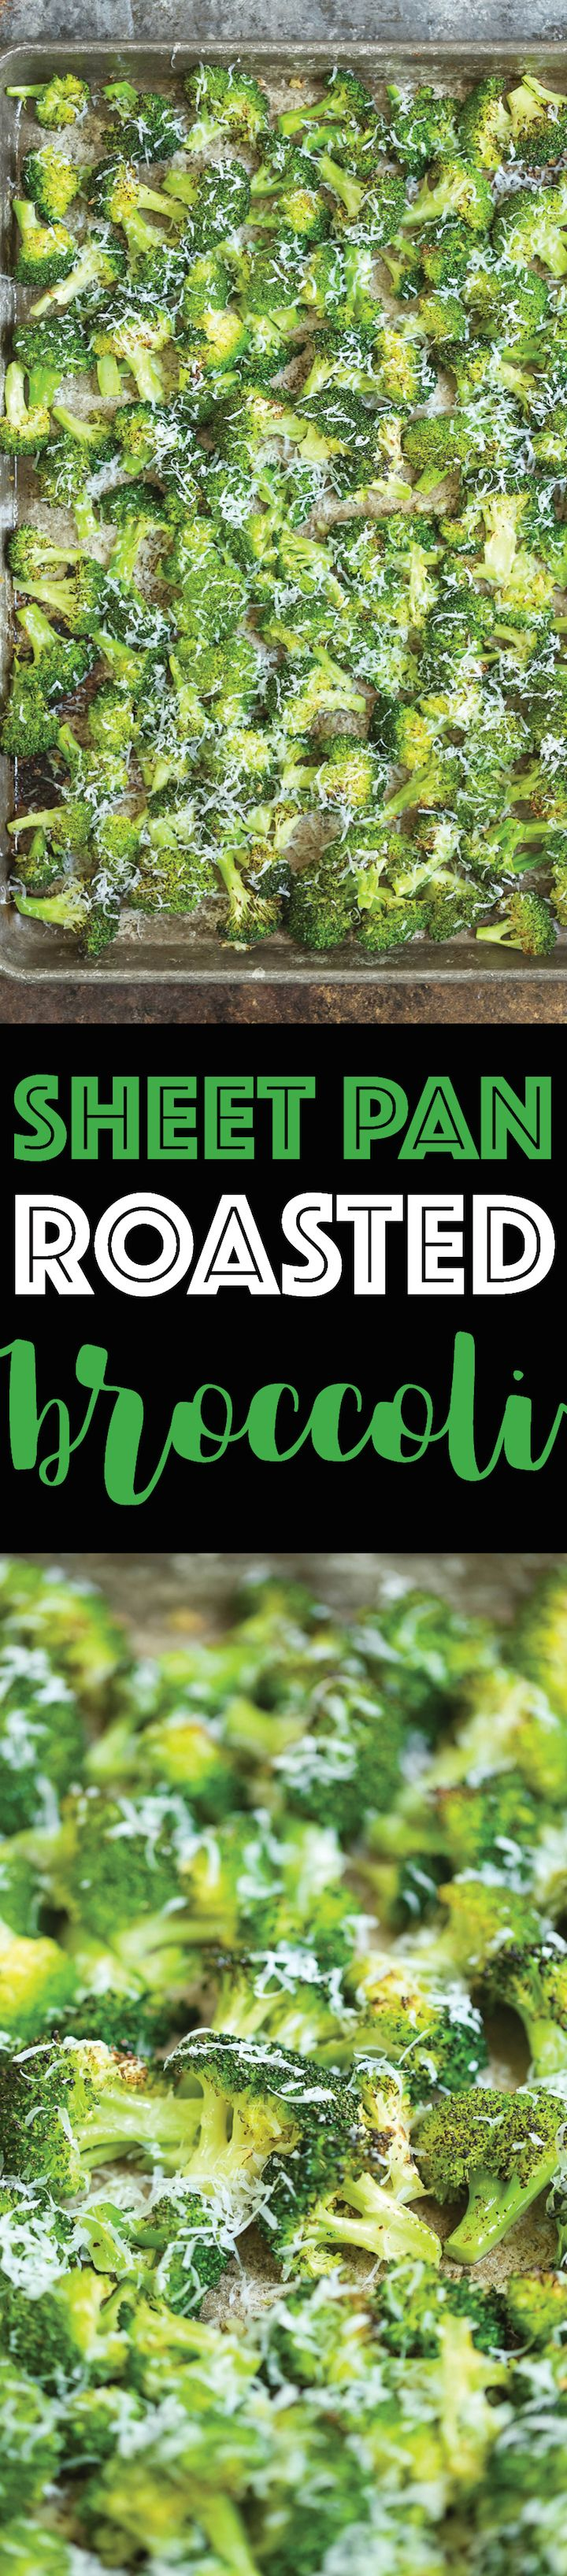 Sheet Pan Roasted Broccoli - How to make roasted broccoli so PERFECTLY and easily using ONE SHEET PAN! The broccoli comes out perfectly crisp and addicting!